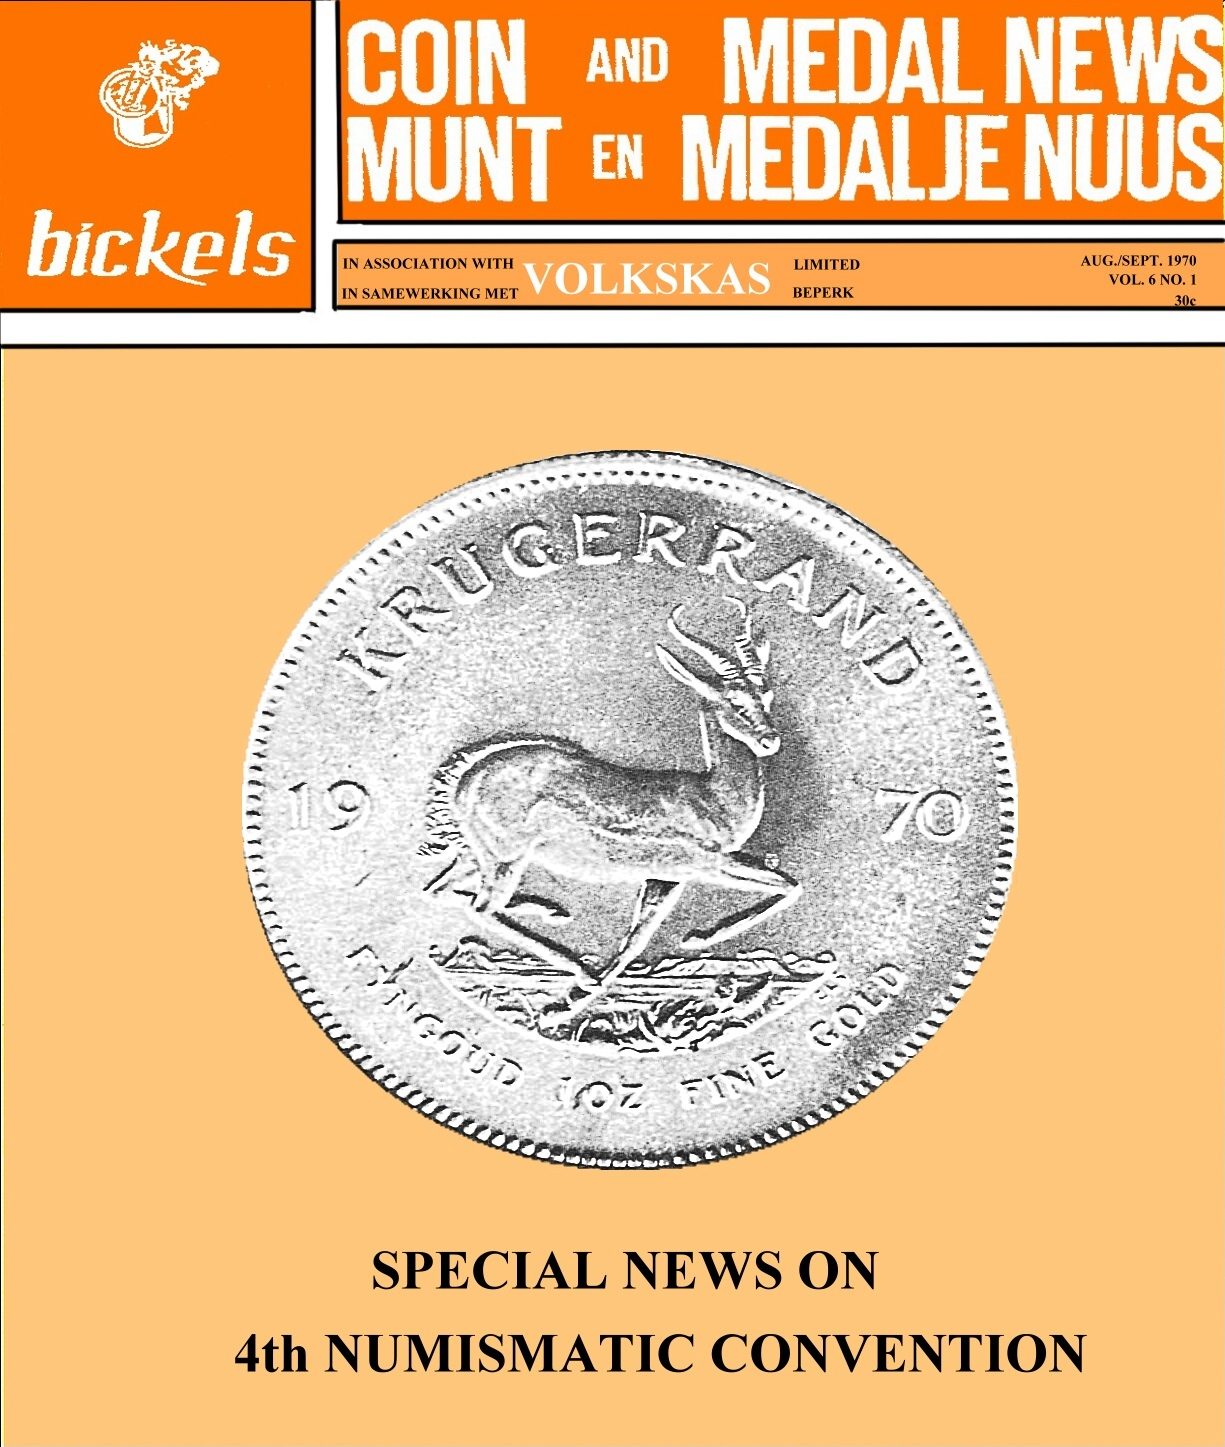 Bickels Coin & Medal News August September 1970 Vol 6 No 1